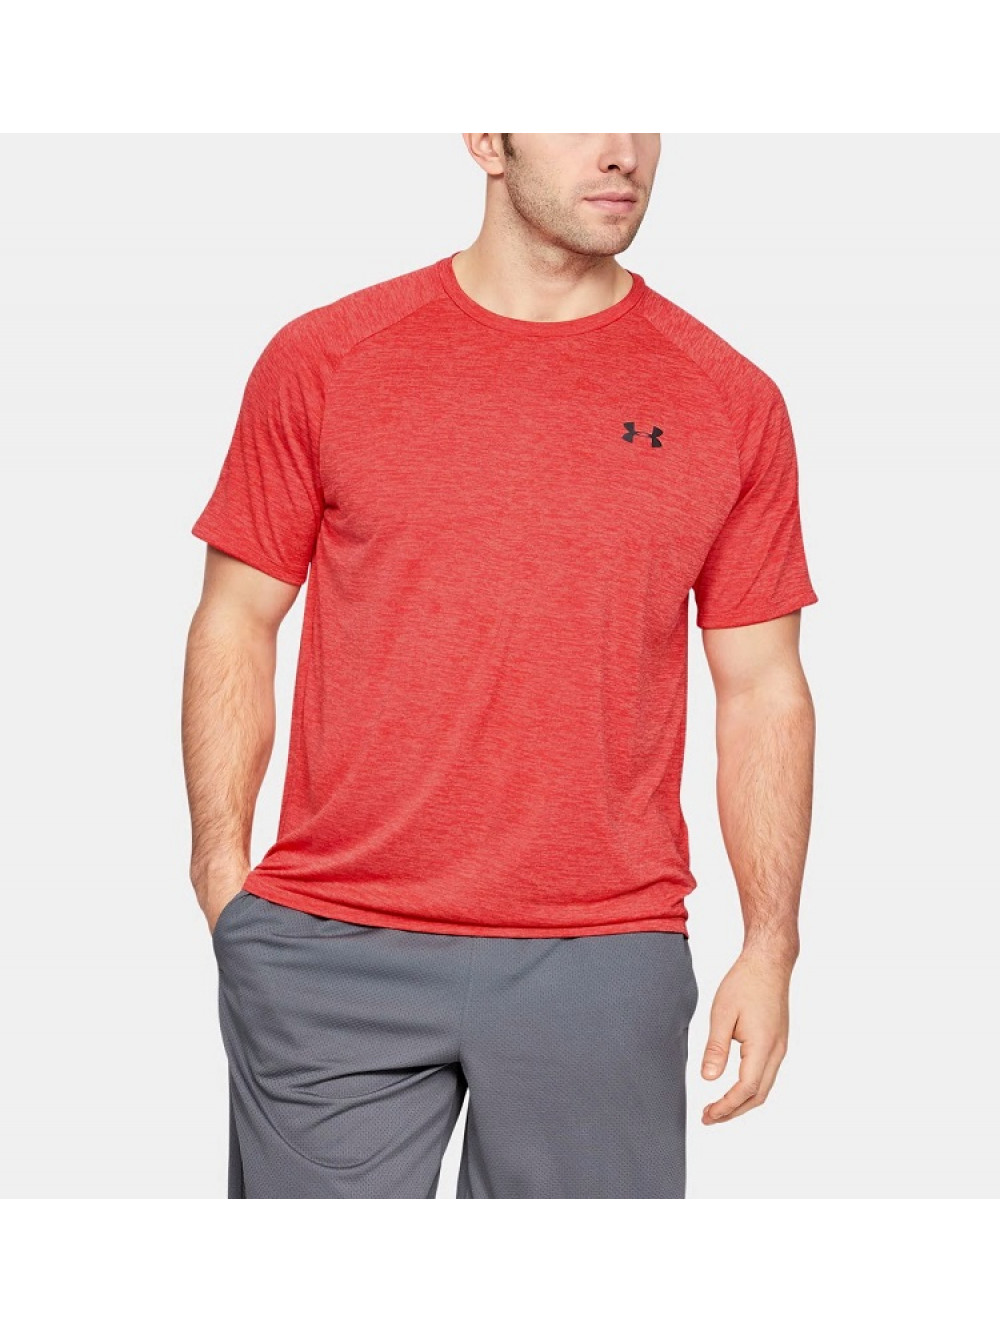 Tričko Under Armour TECH SS TEE piros